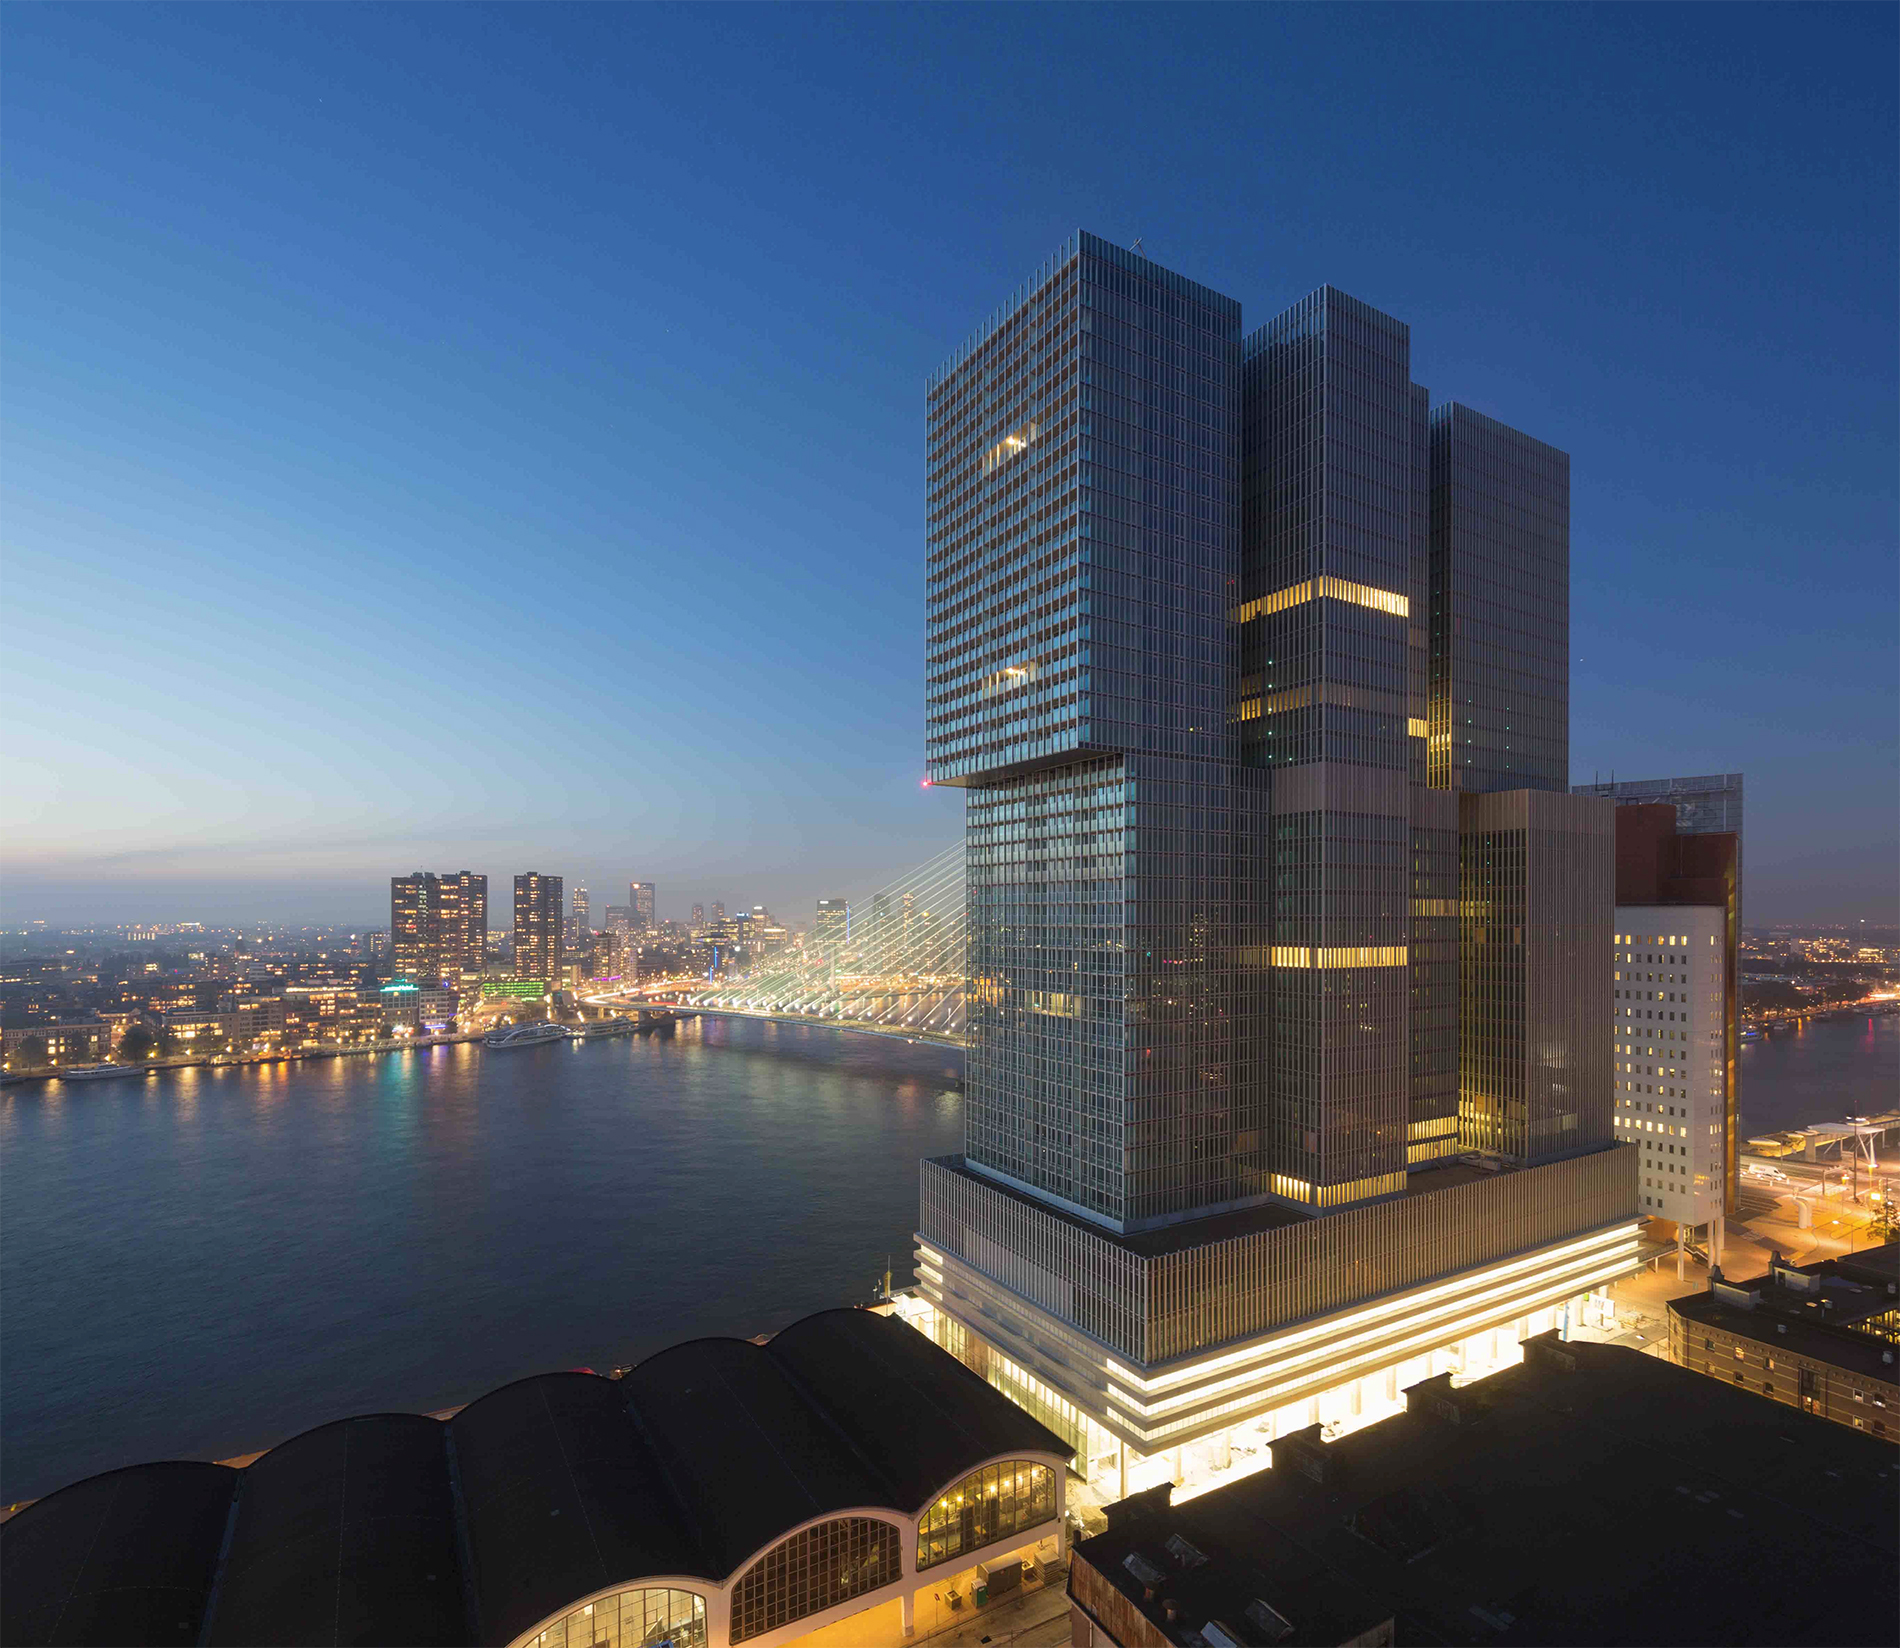 Lifestyle Hotel Nhow Rotterdam Opens Its Doors To